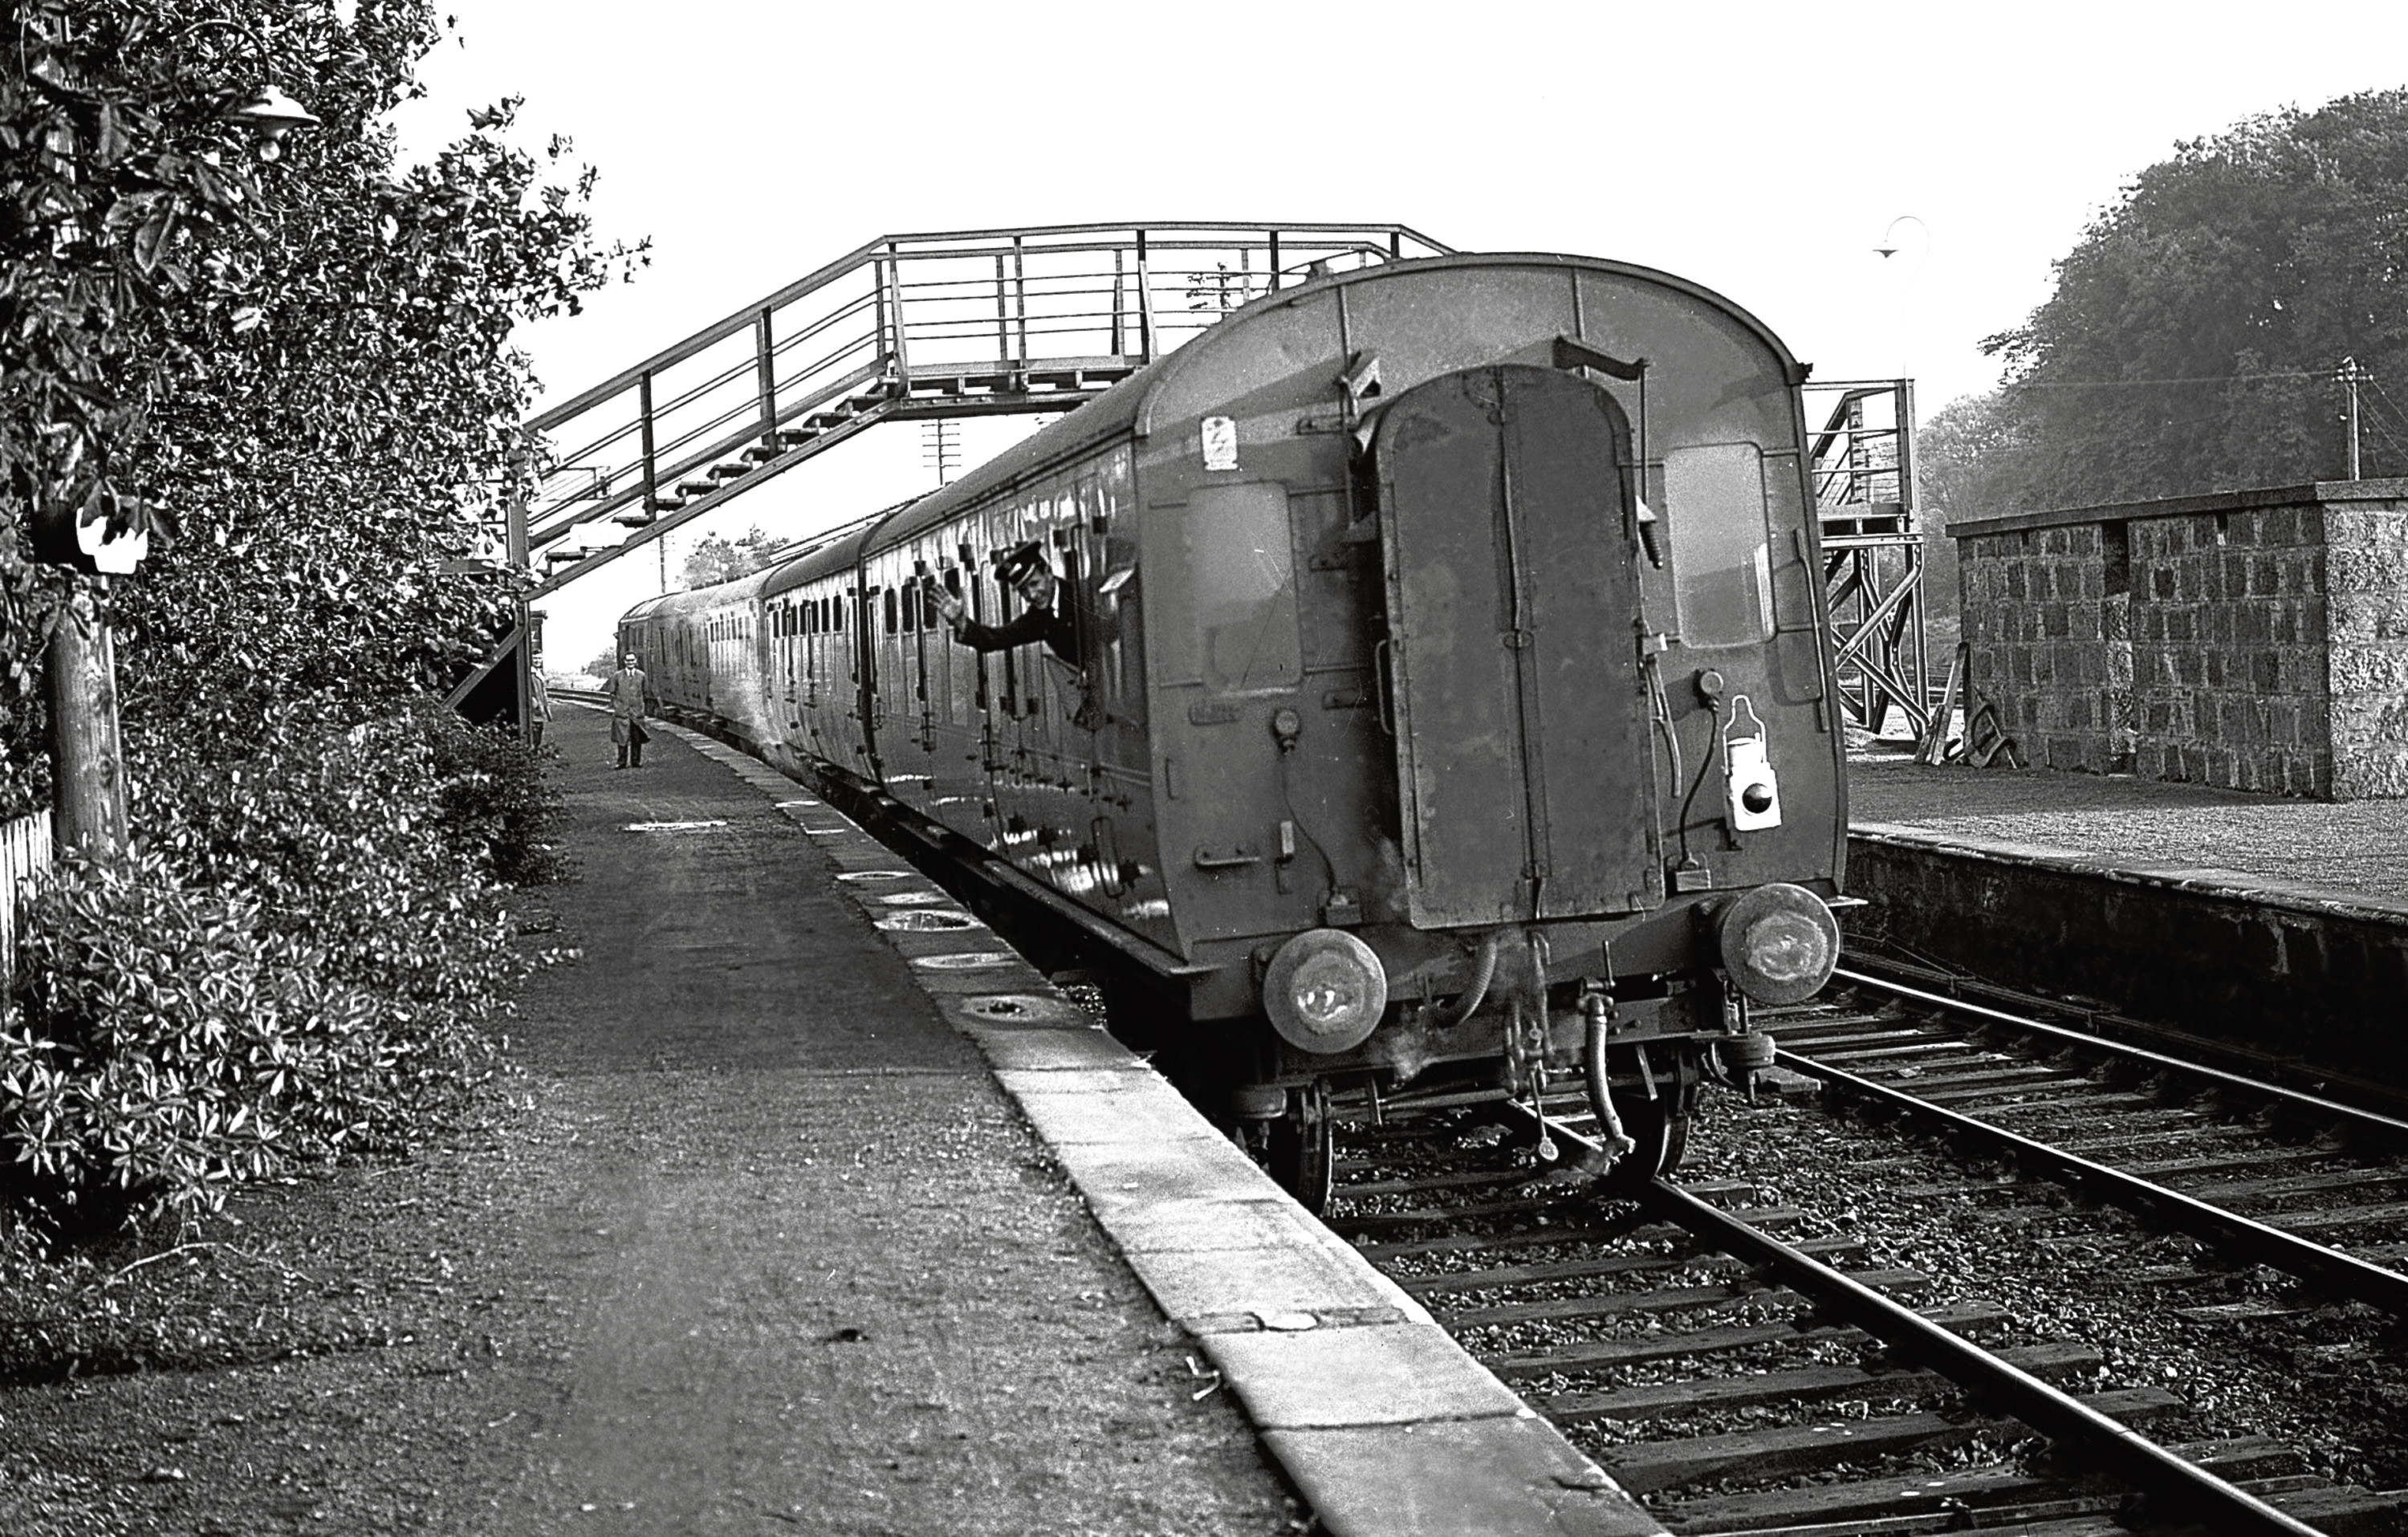 Ellon Station, which saw its last passenger train in 1965.